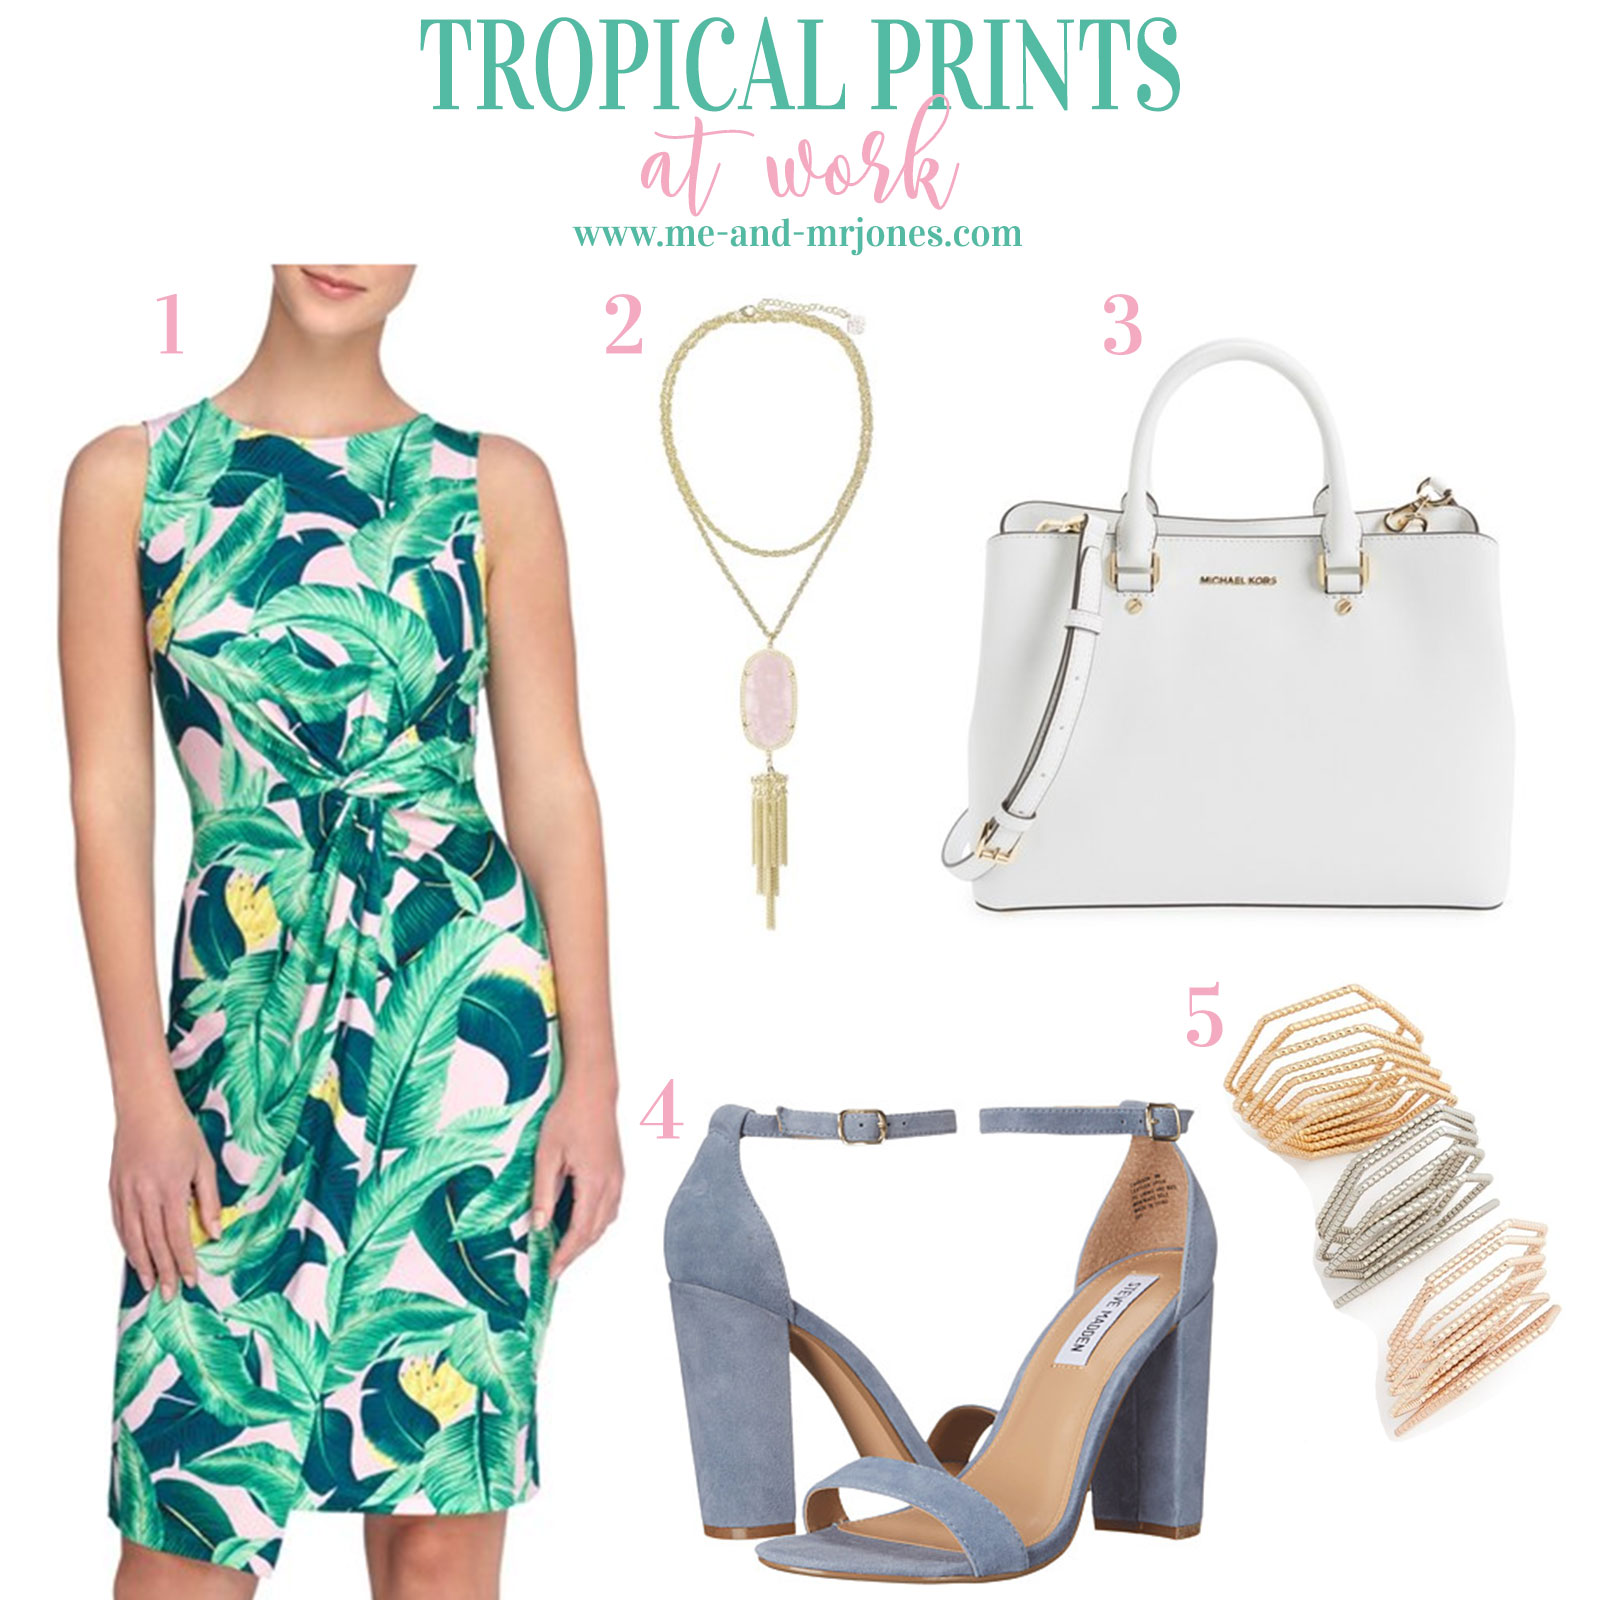 Palm print dress styled for work, cute summer work outfits!